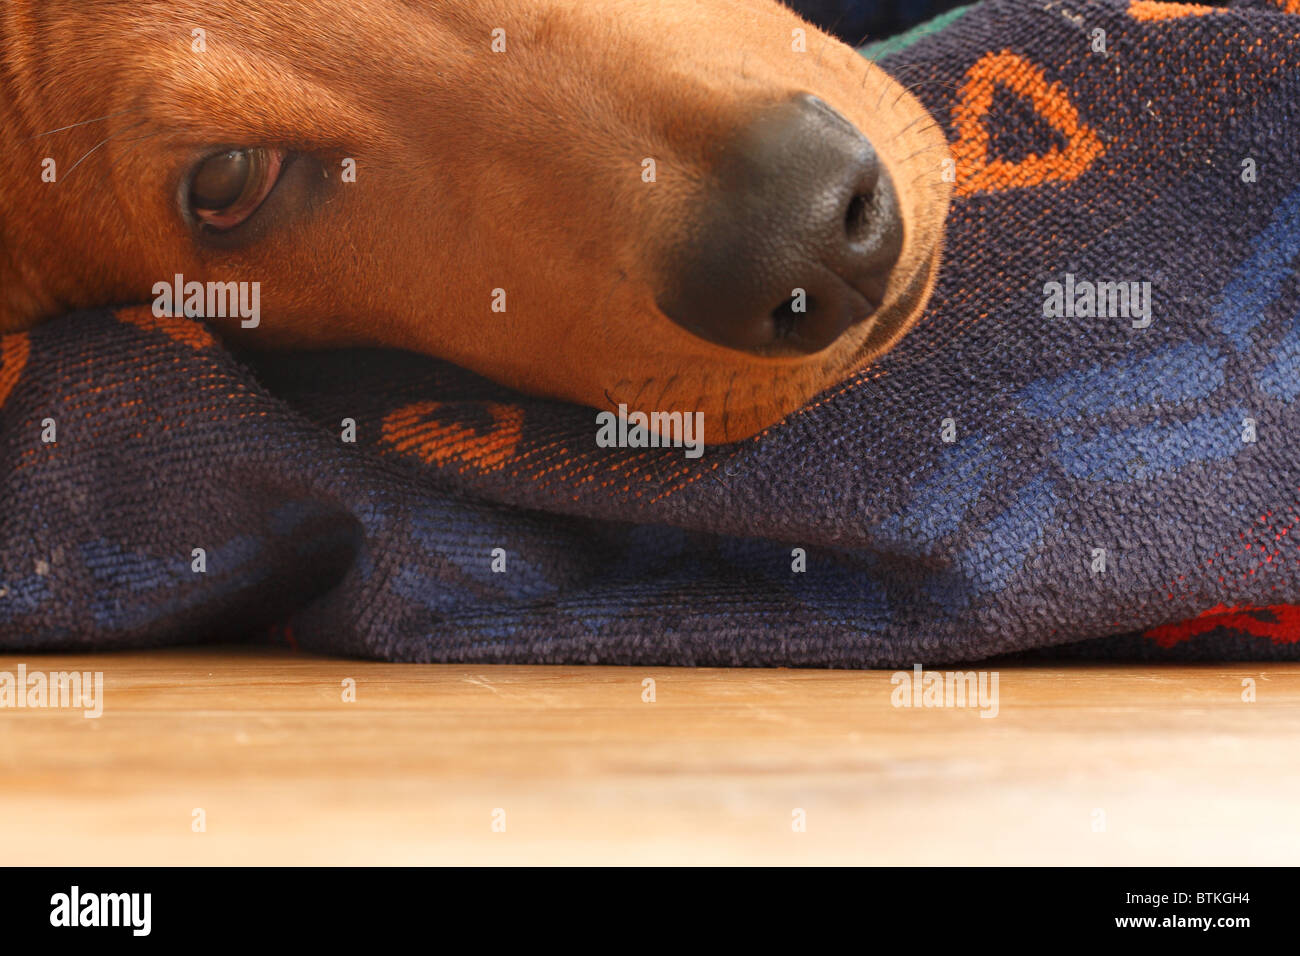 A dog's head - Stock Image